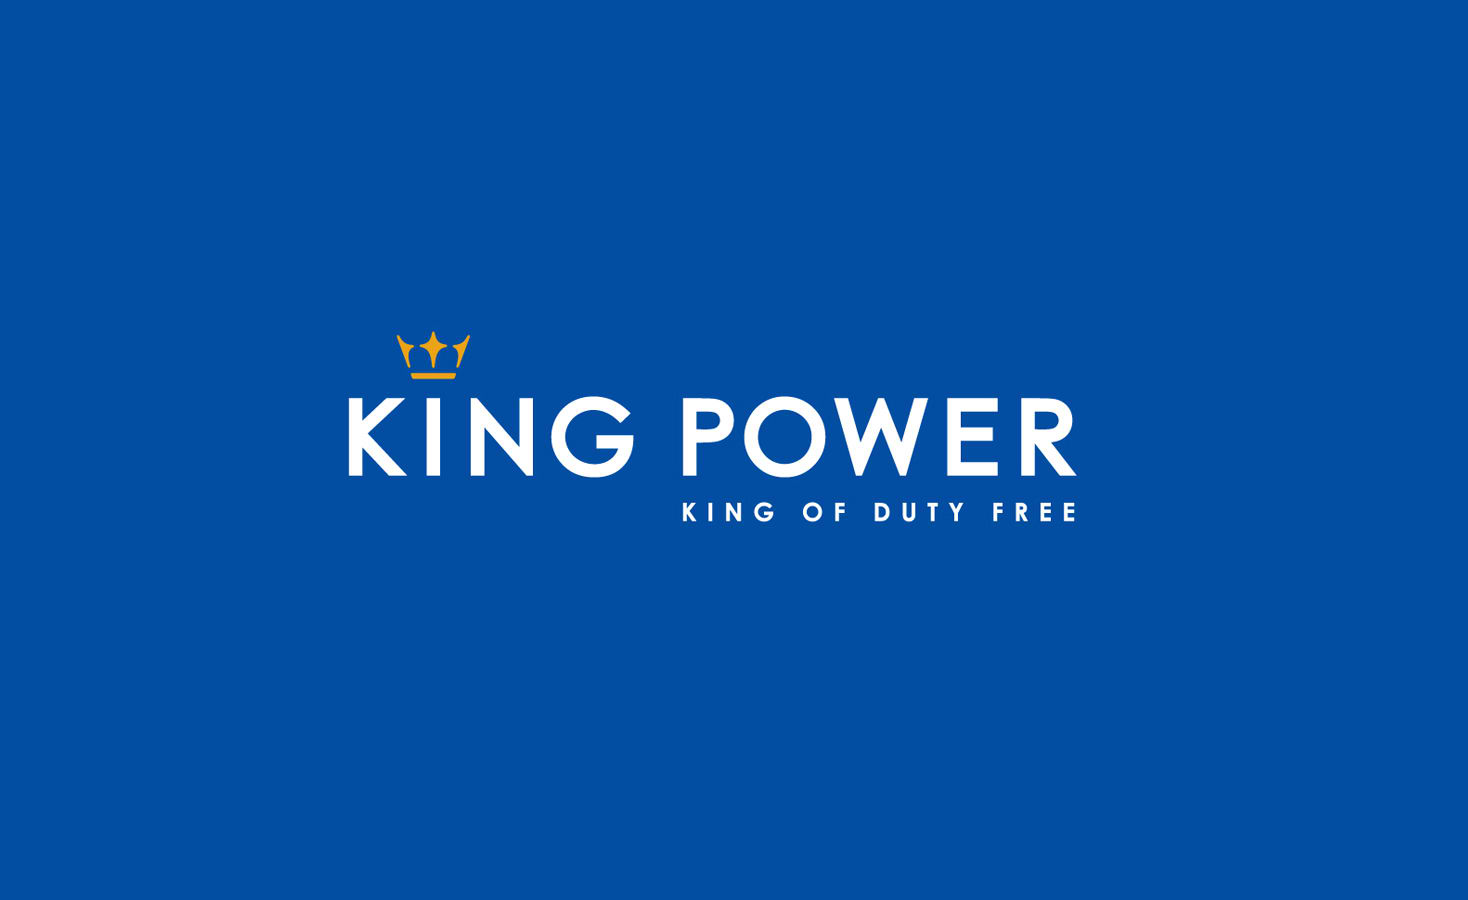 King Power Gold Cup